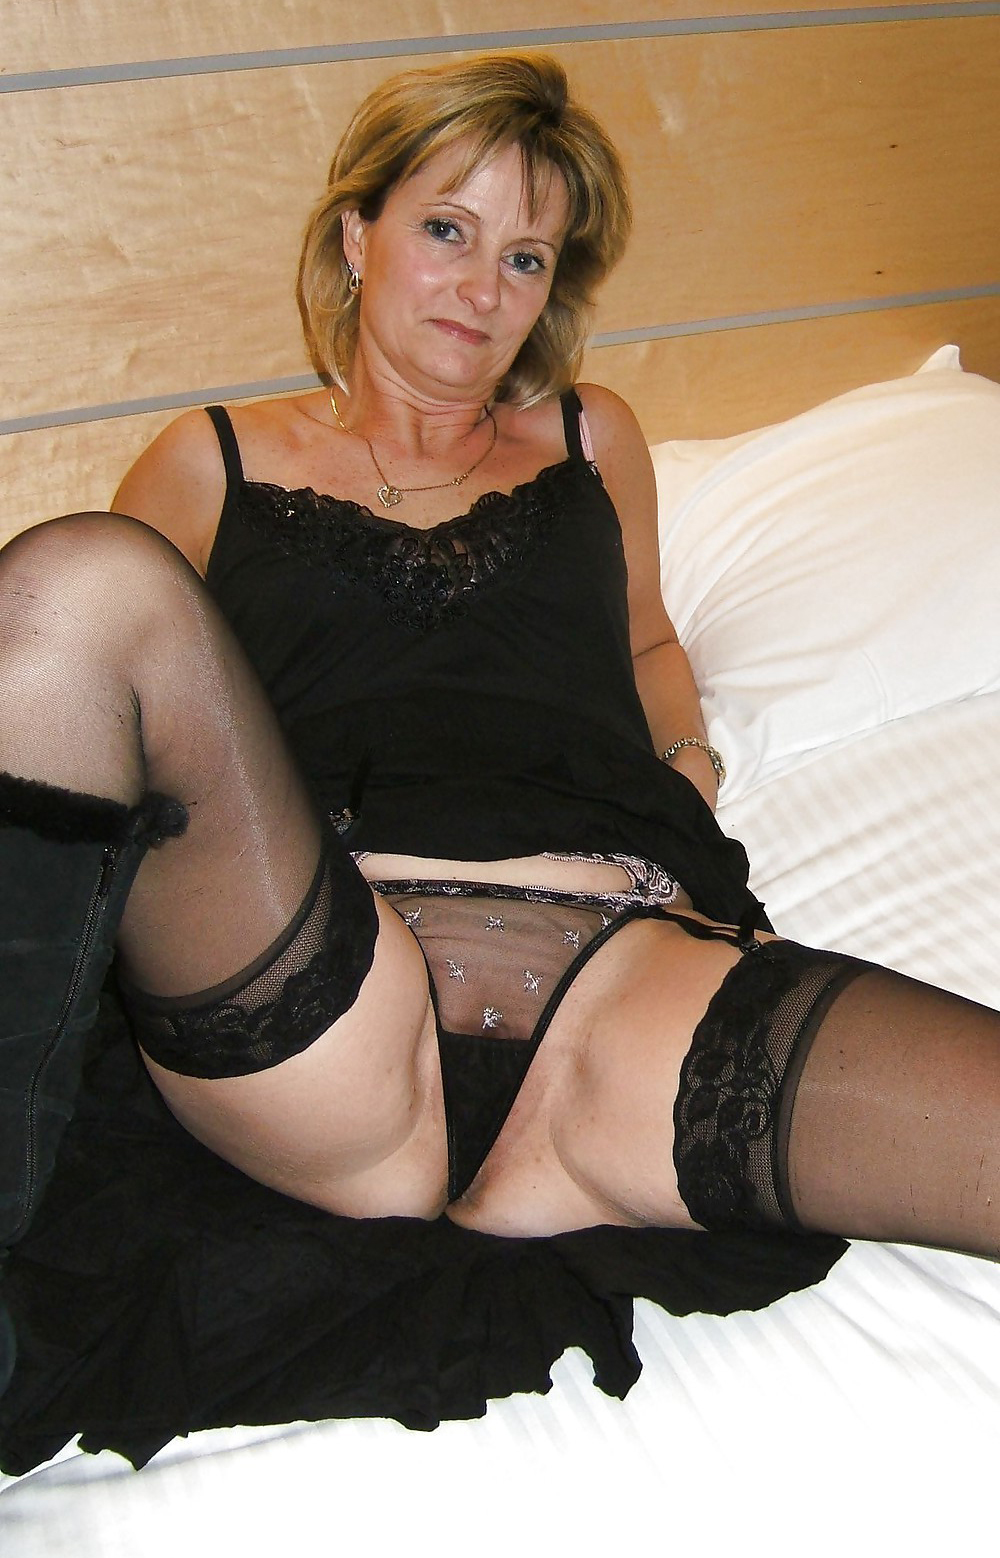 Milf_lacey anal